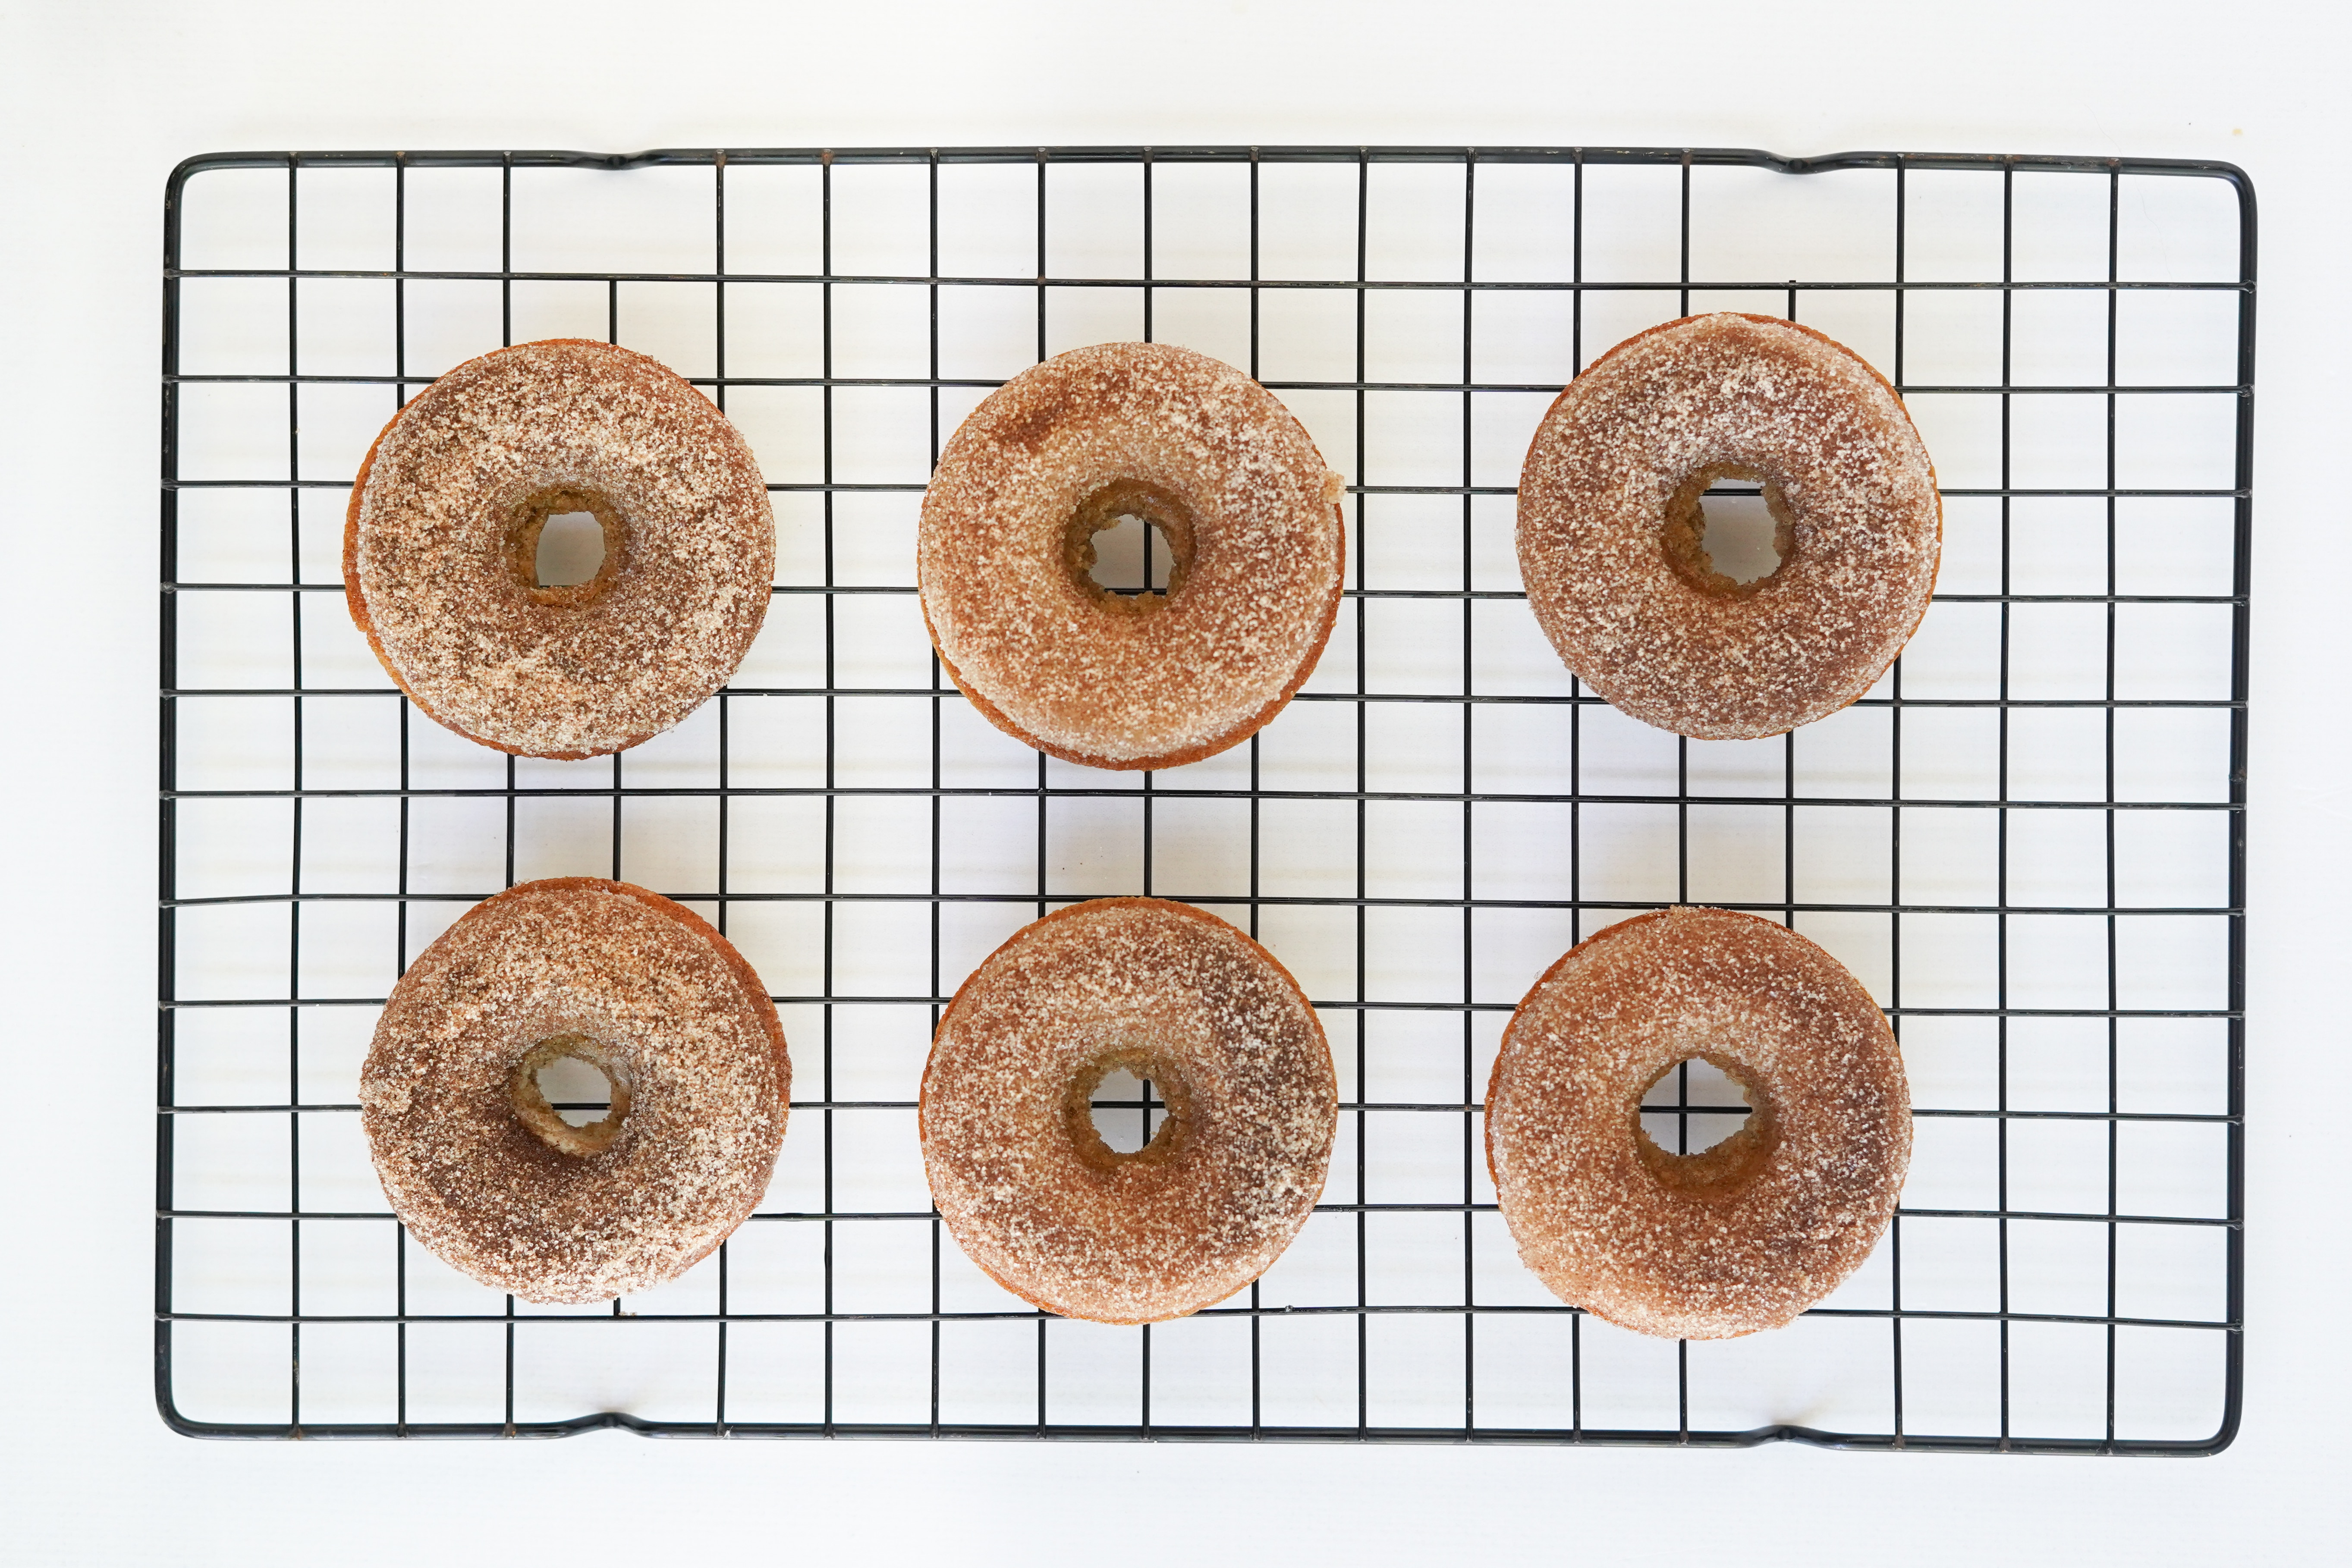 apple cider doughnuts on cooling rack sprinkled with cinnamon and sugar